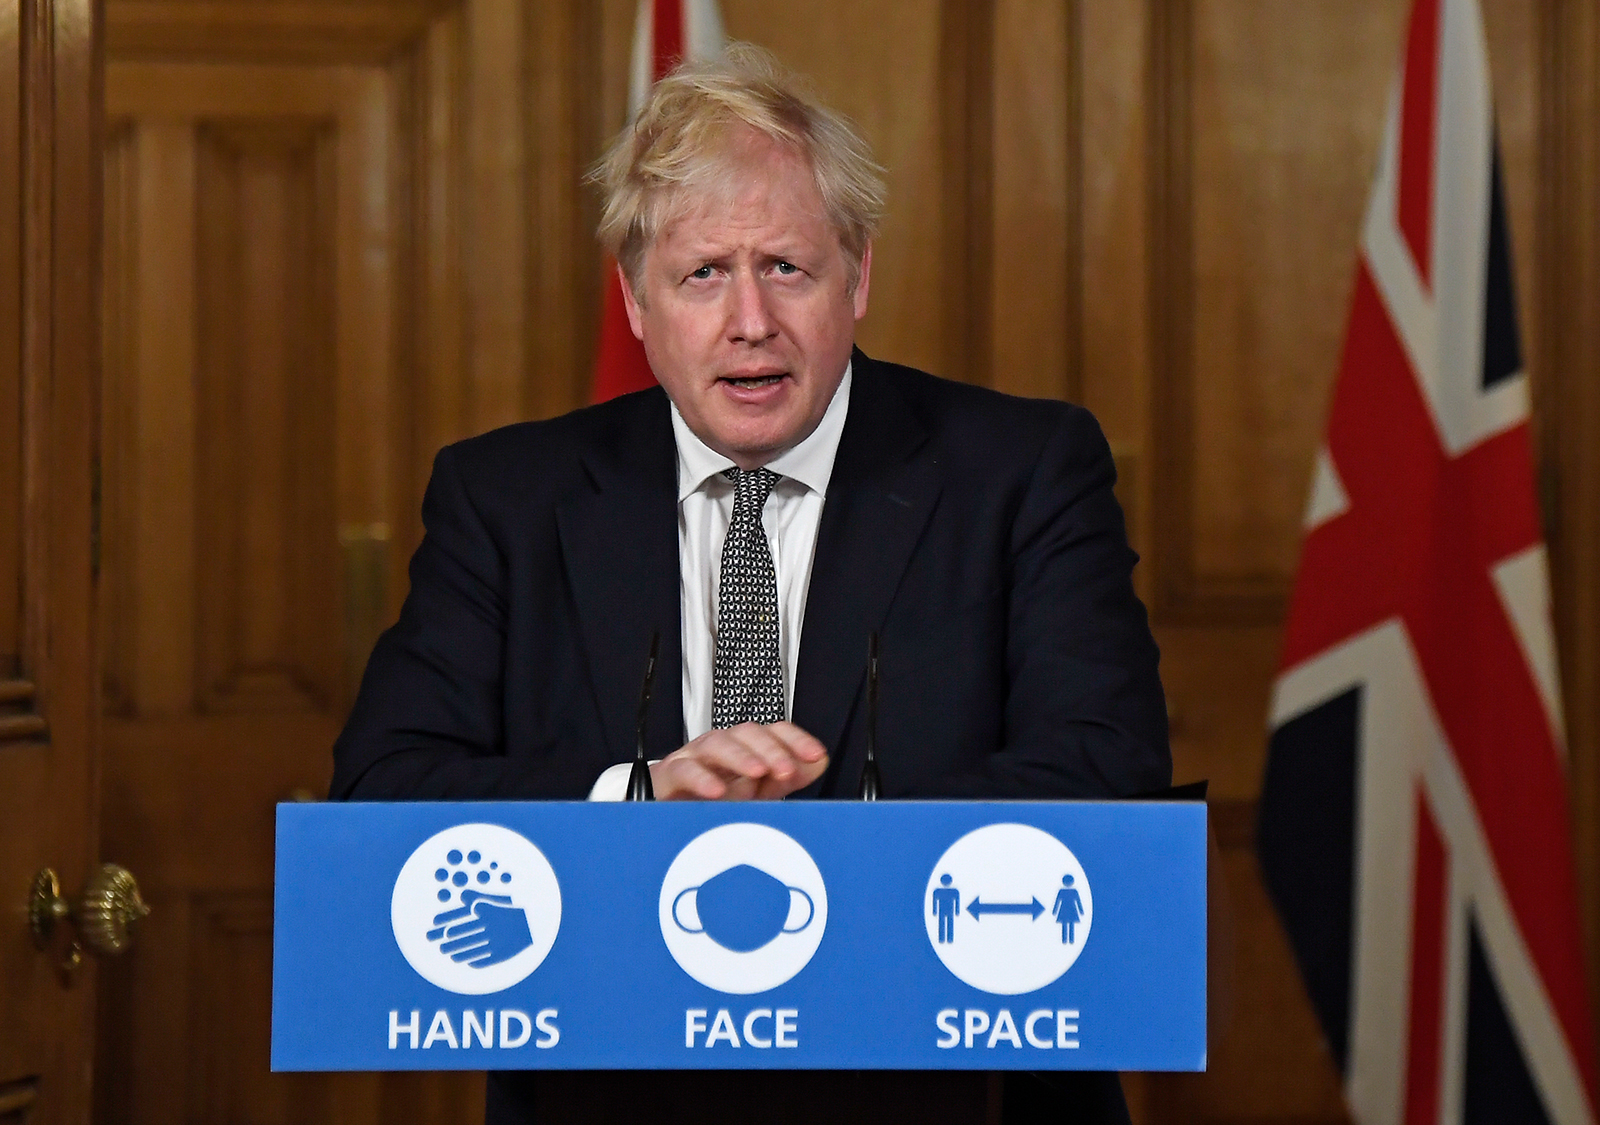 Britain's Prime Minister Boris Johnson speaks during a press conference in 10 Downing Street  in London, on October 31.